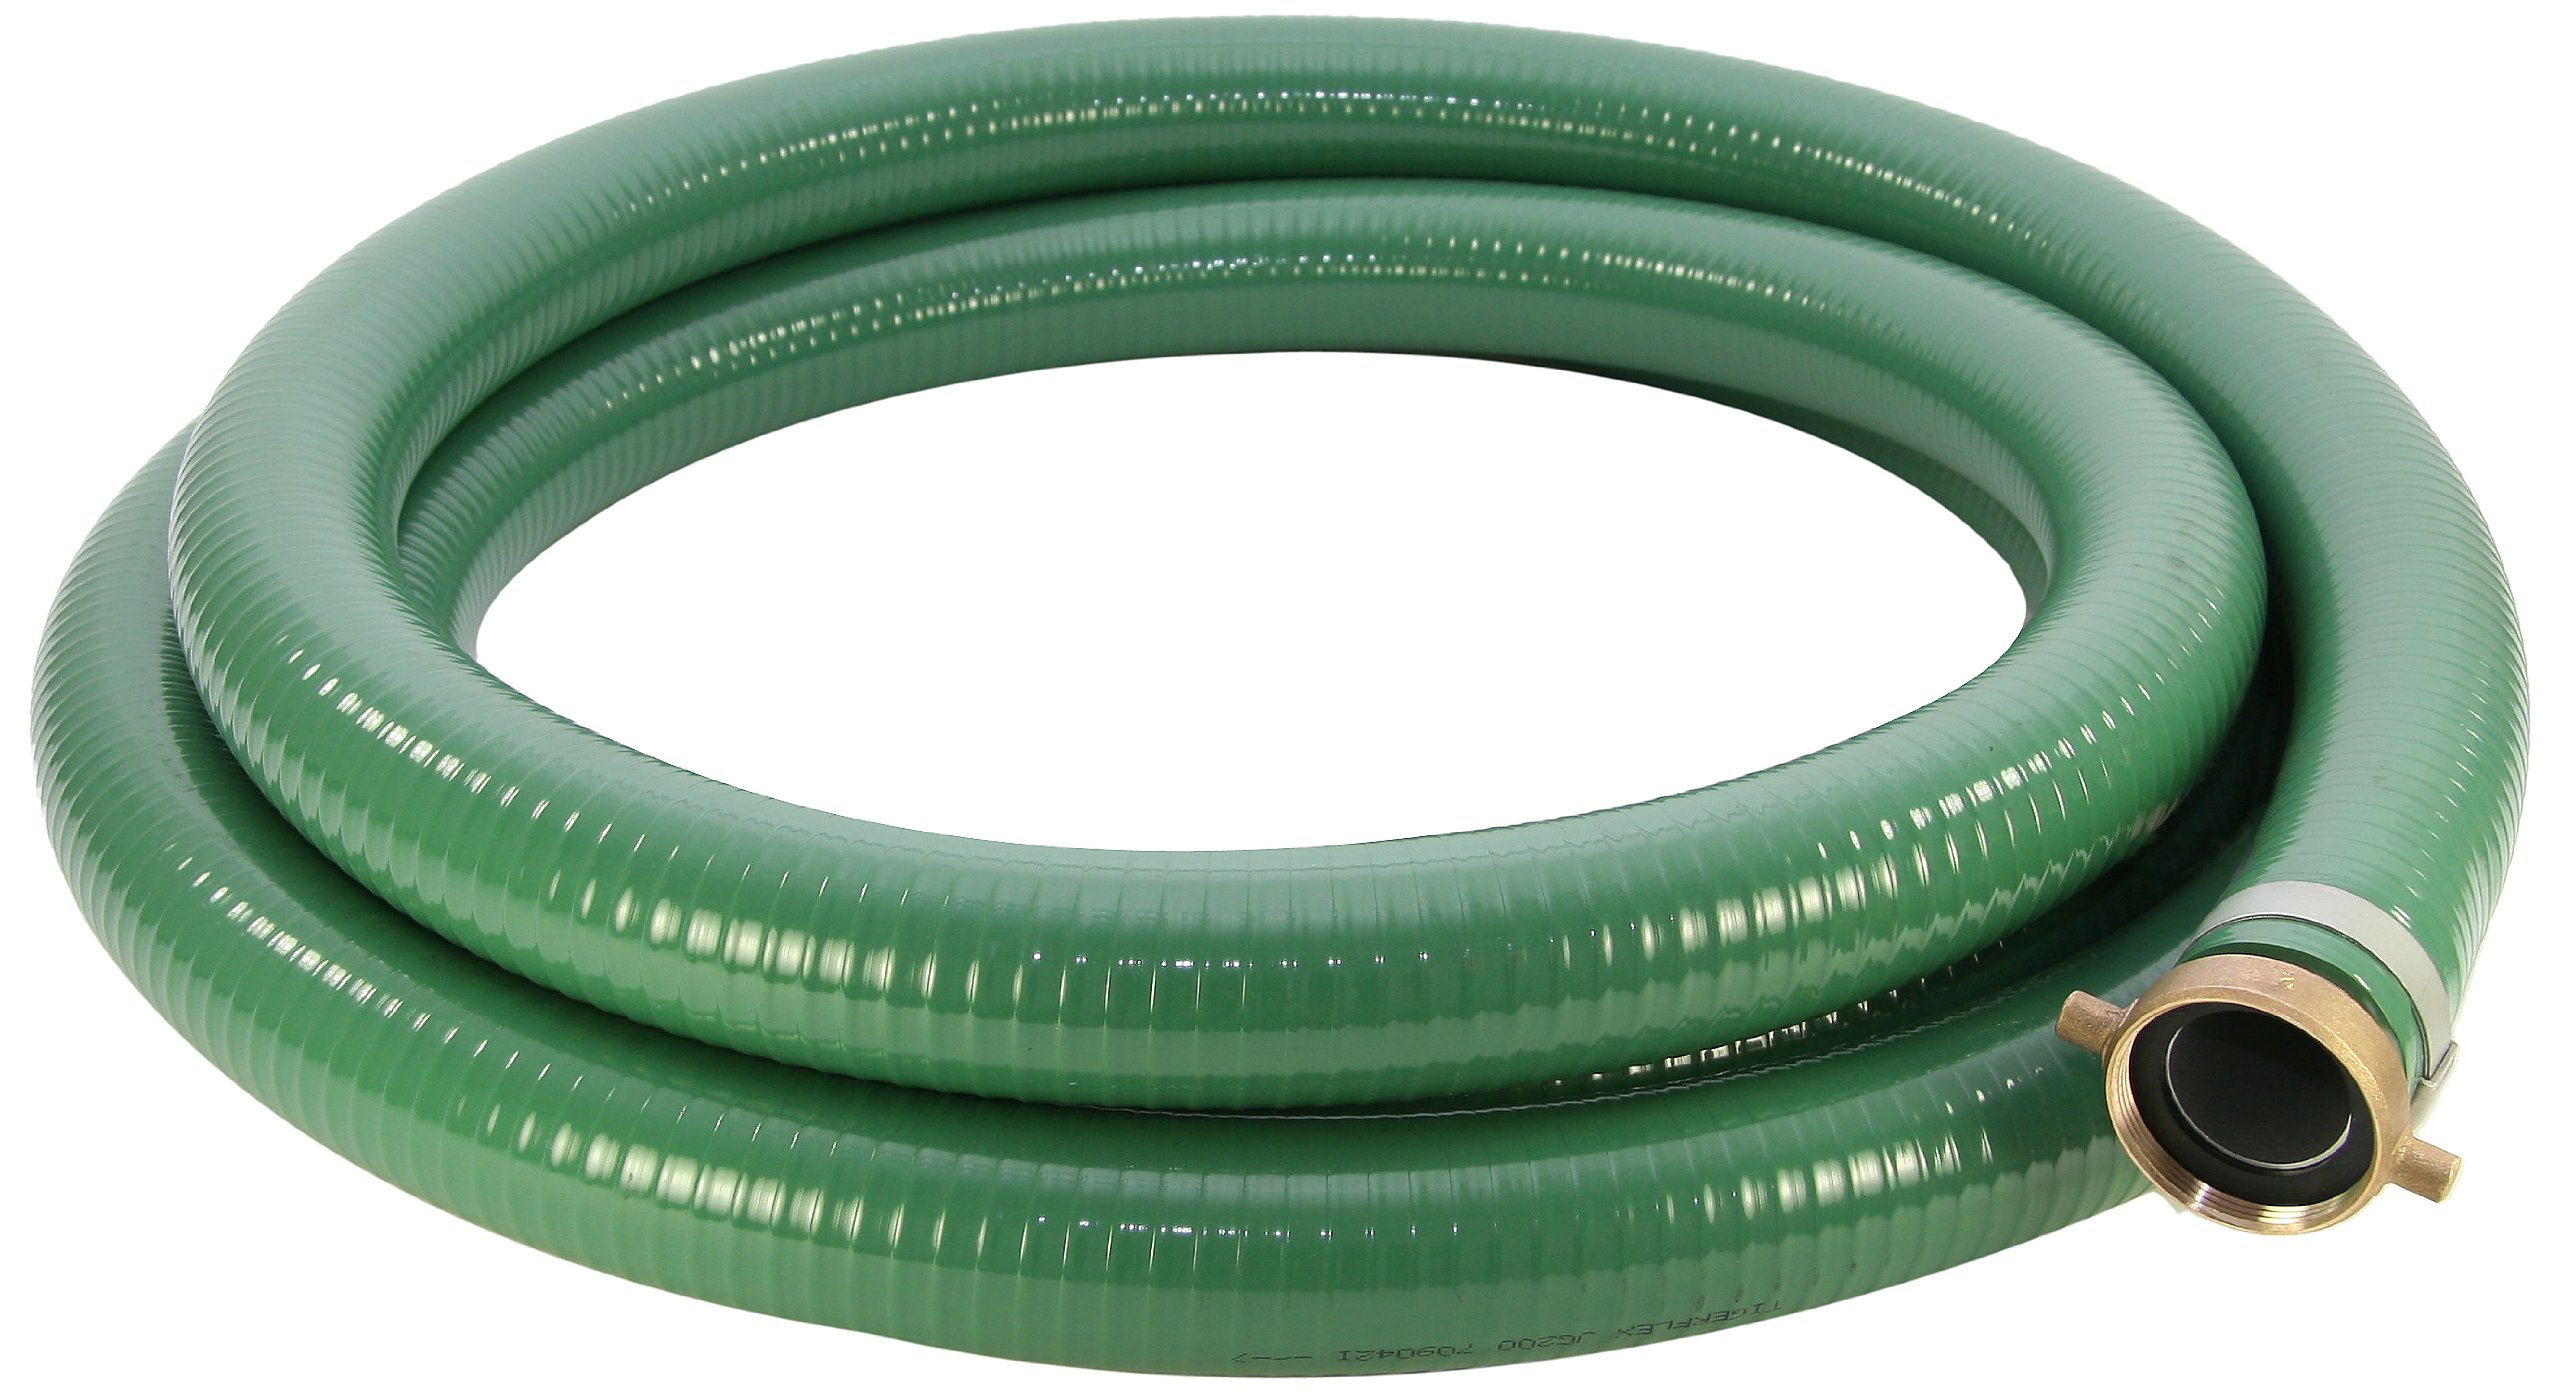 Abbott Rubber PVC Suction Hose Assembly, Green, 2'' Male X Female NPSM, 65 psi Max Pressure, 25' Length, 2'' ID by Abbott Rubber